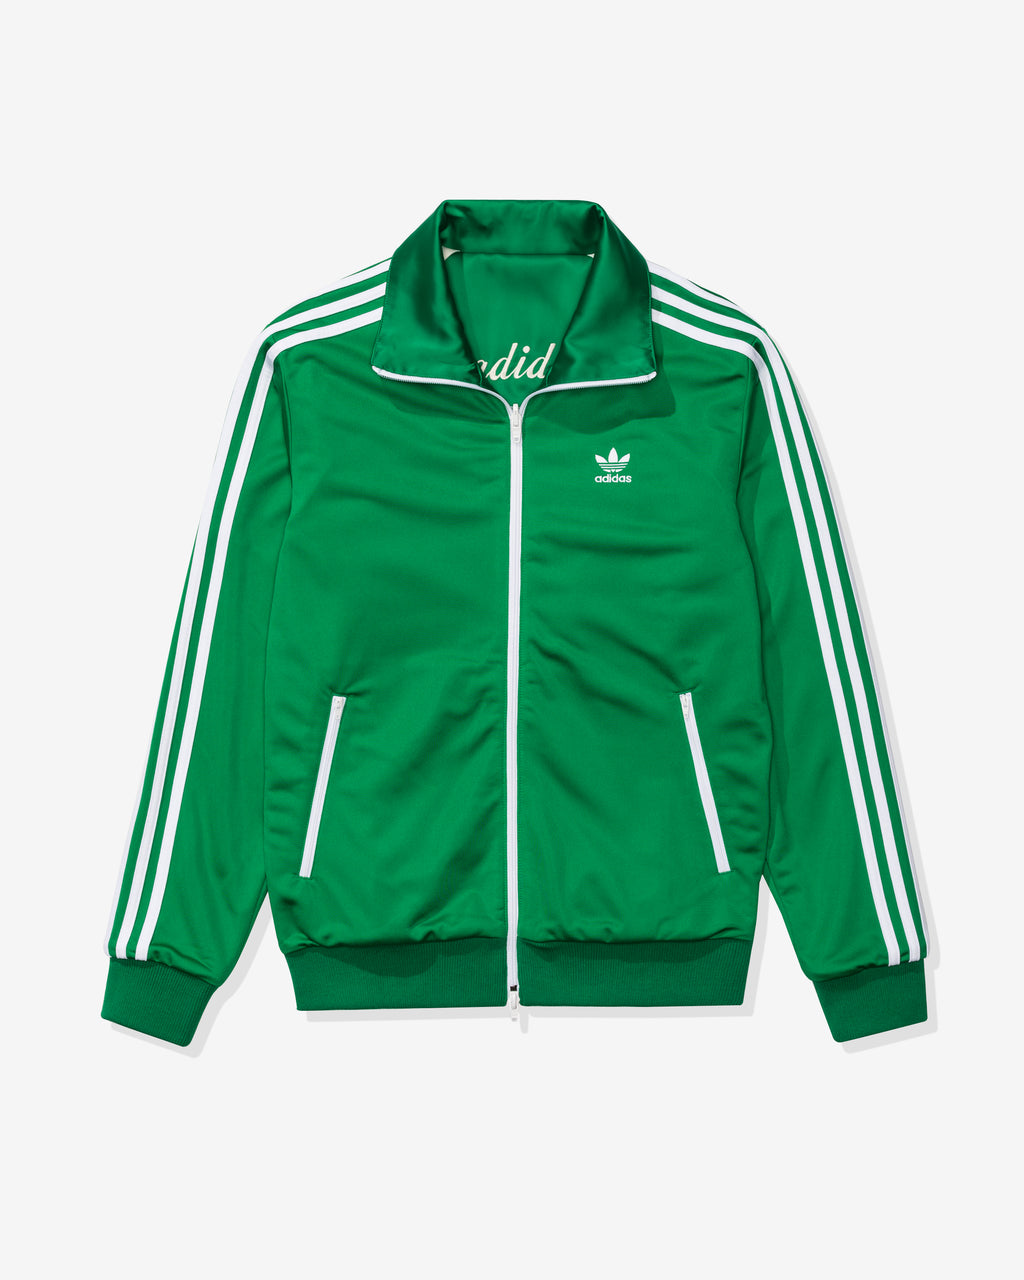 ADIDAS X HUMAN MADE T/T FIREBIRD - GREEN